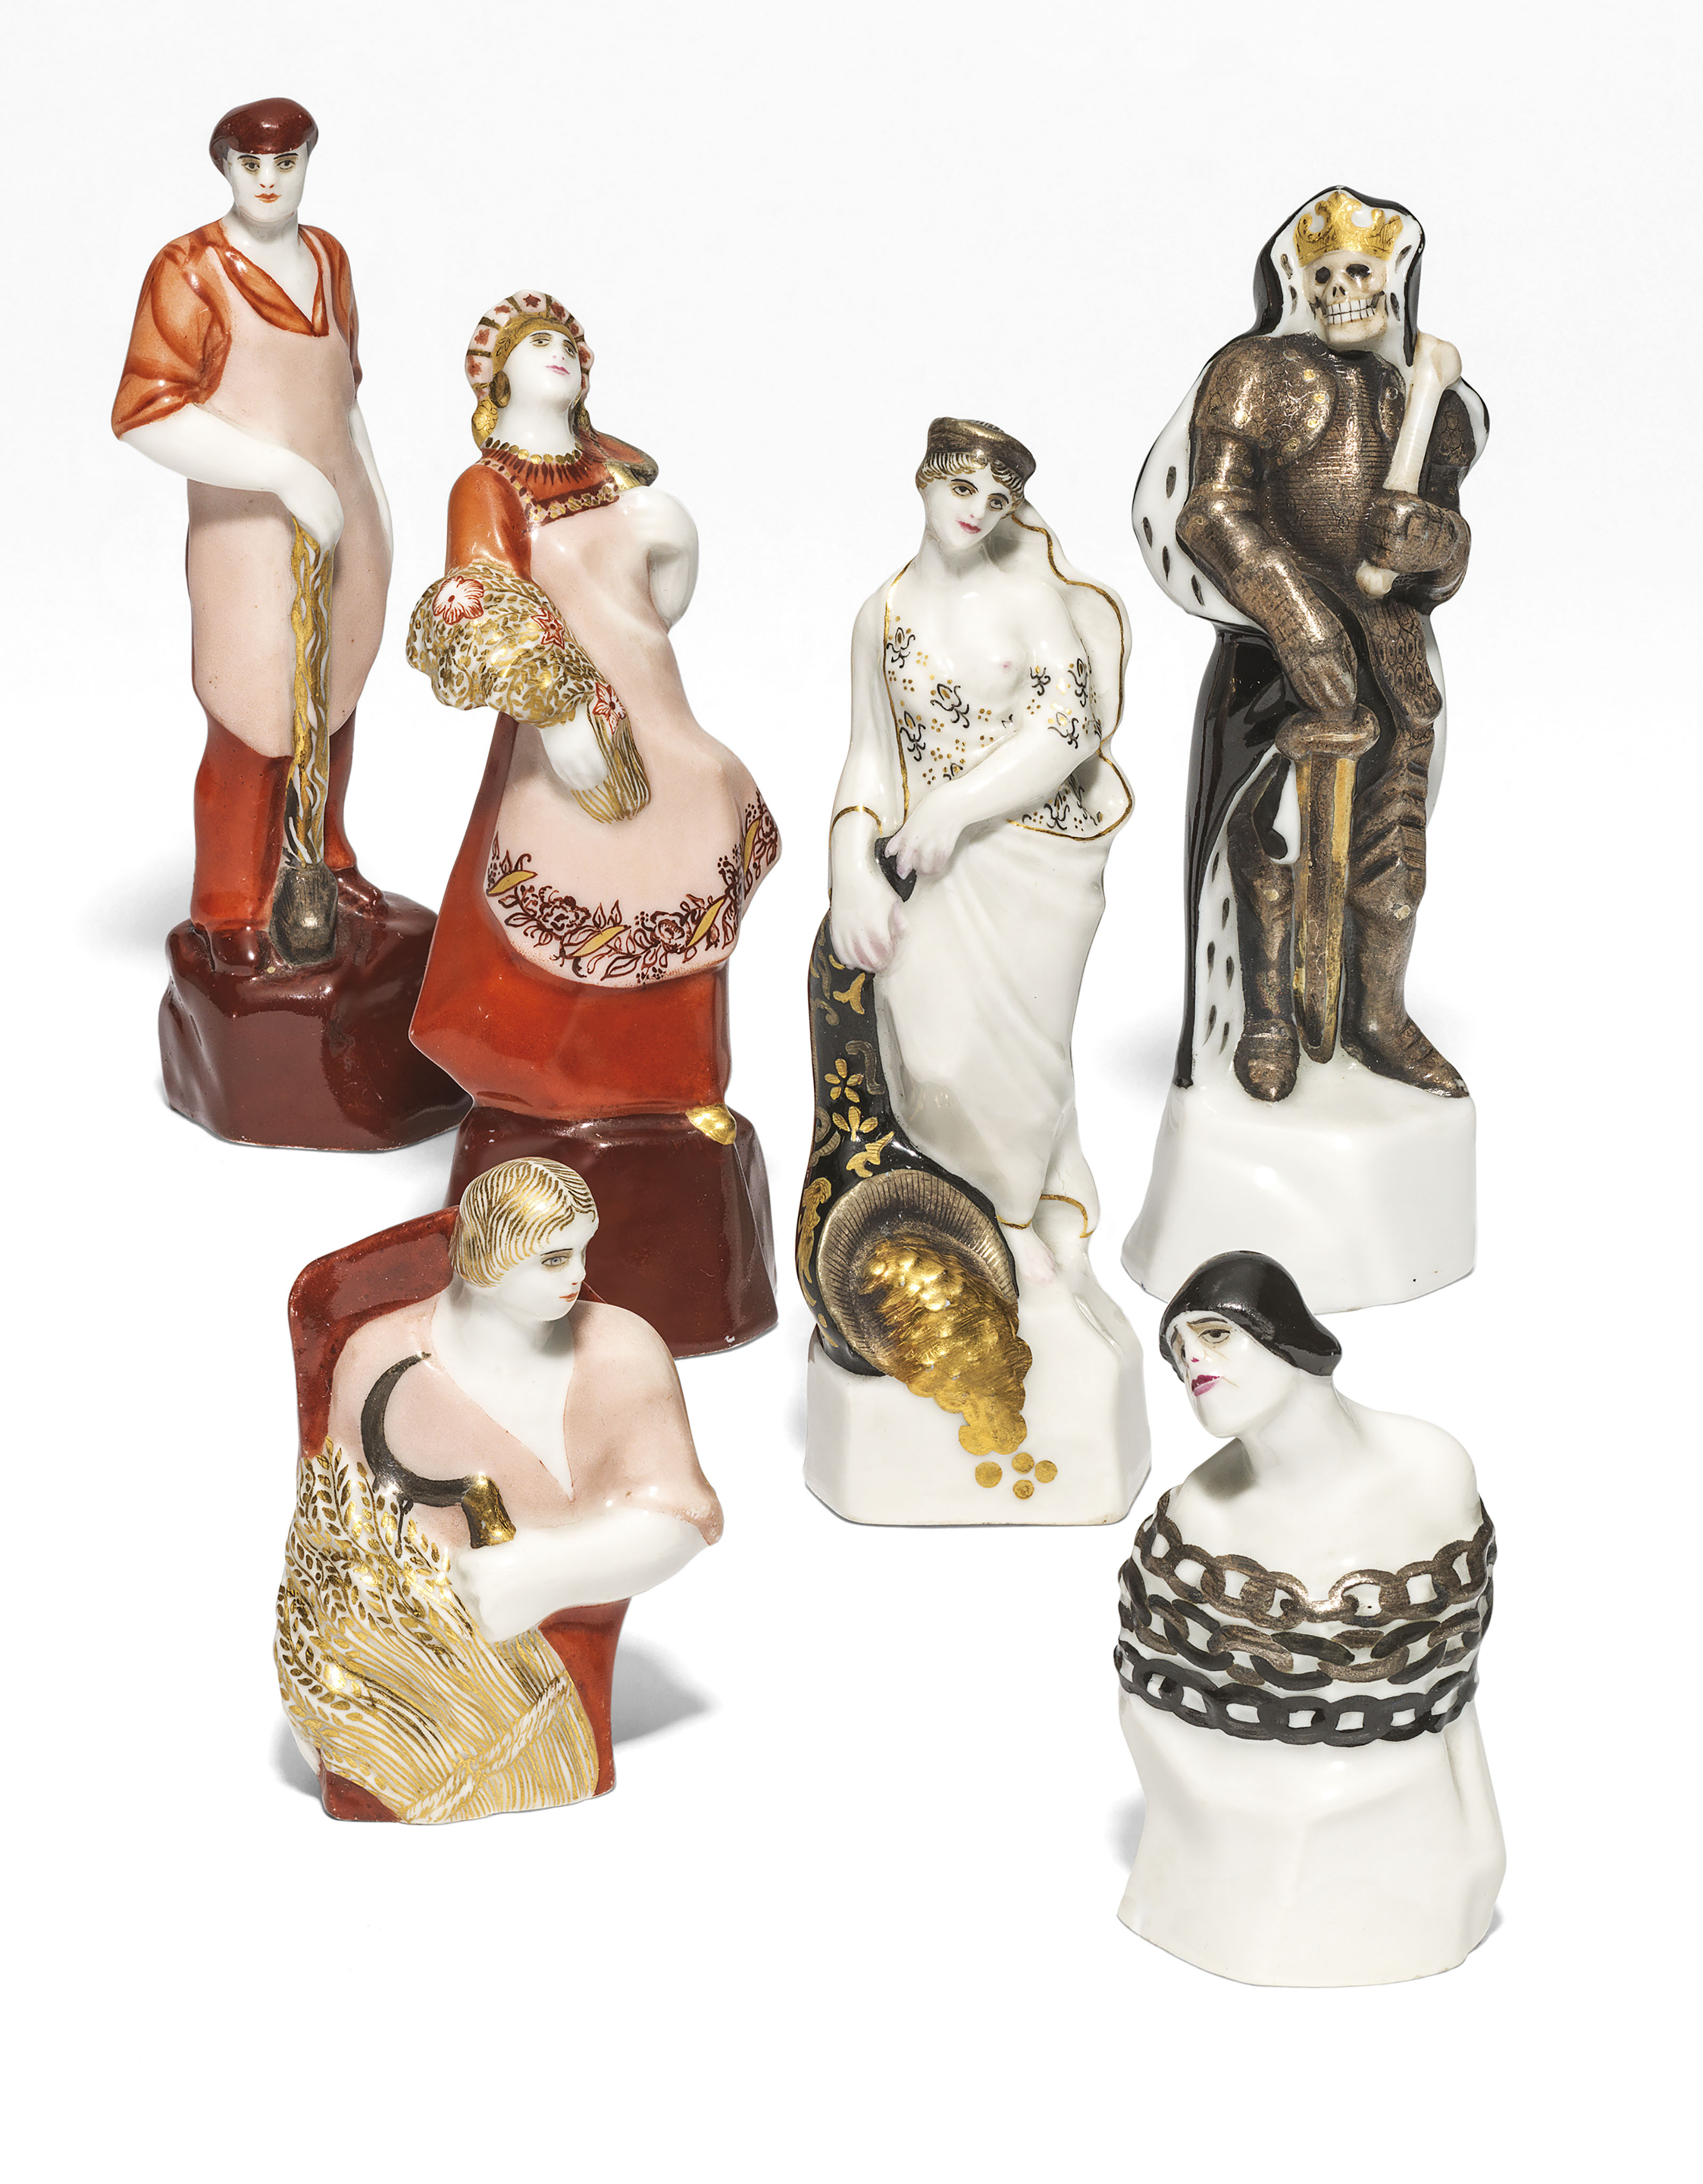 A RARE SOVIET PORCELAIN CHESS SET 'THE REDS AND THE WHITES'